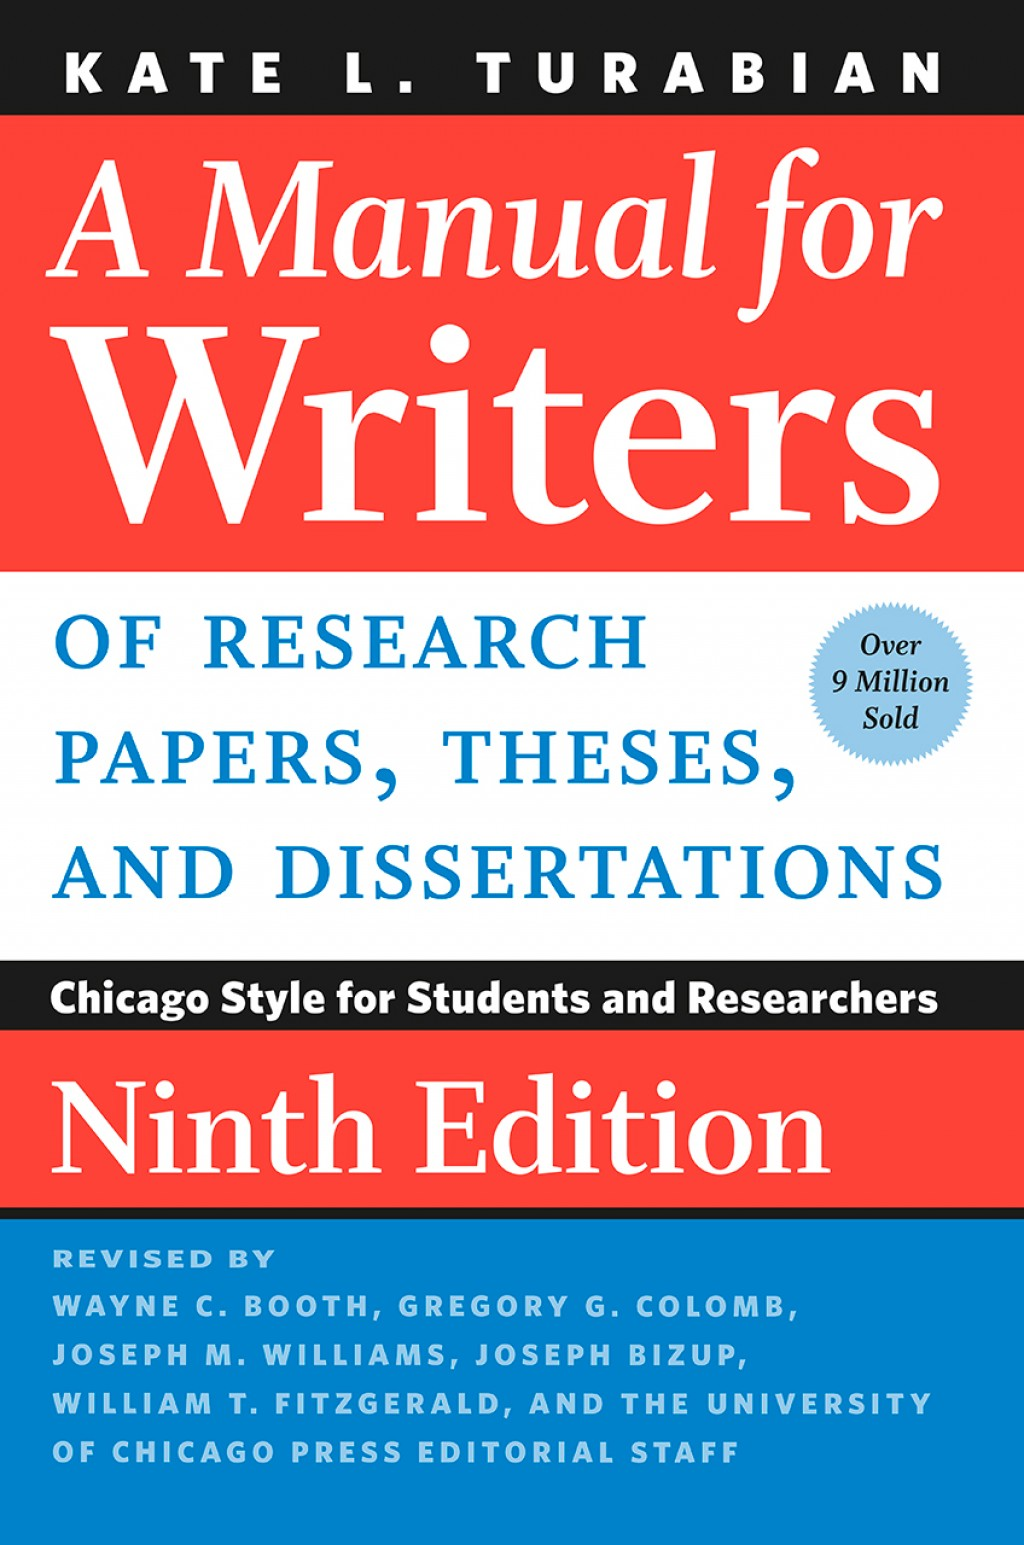 001 Manual For Writers Of Research Papers Theses And Dissertations Paper Magnificent A 8th Ed Pdf Large